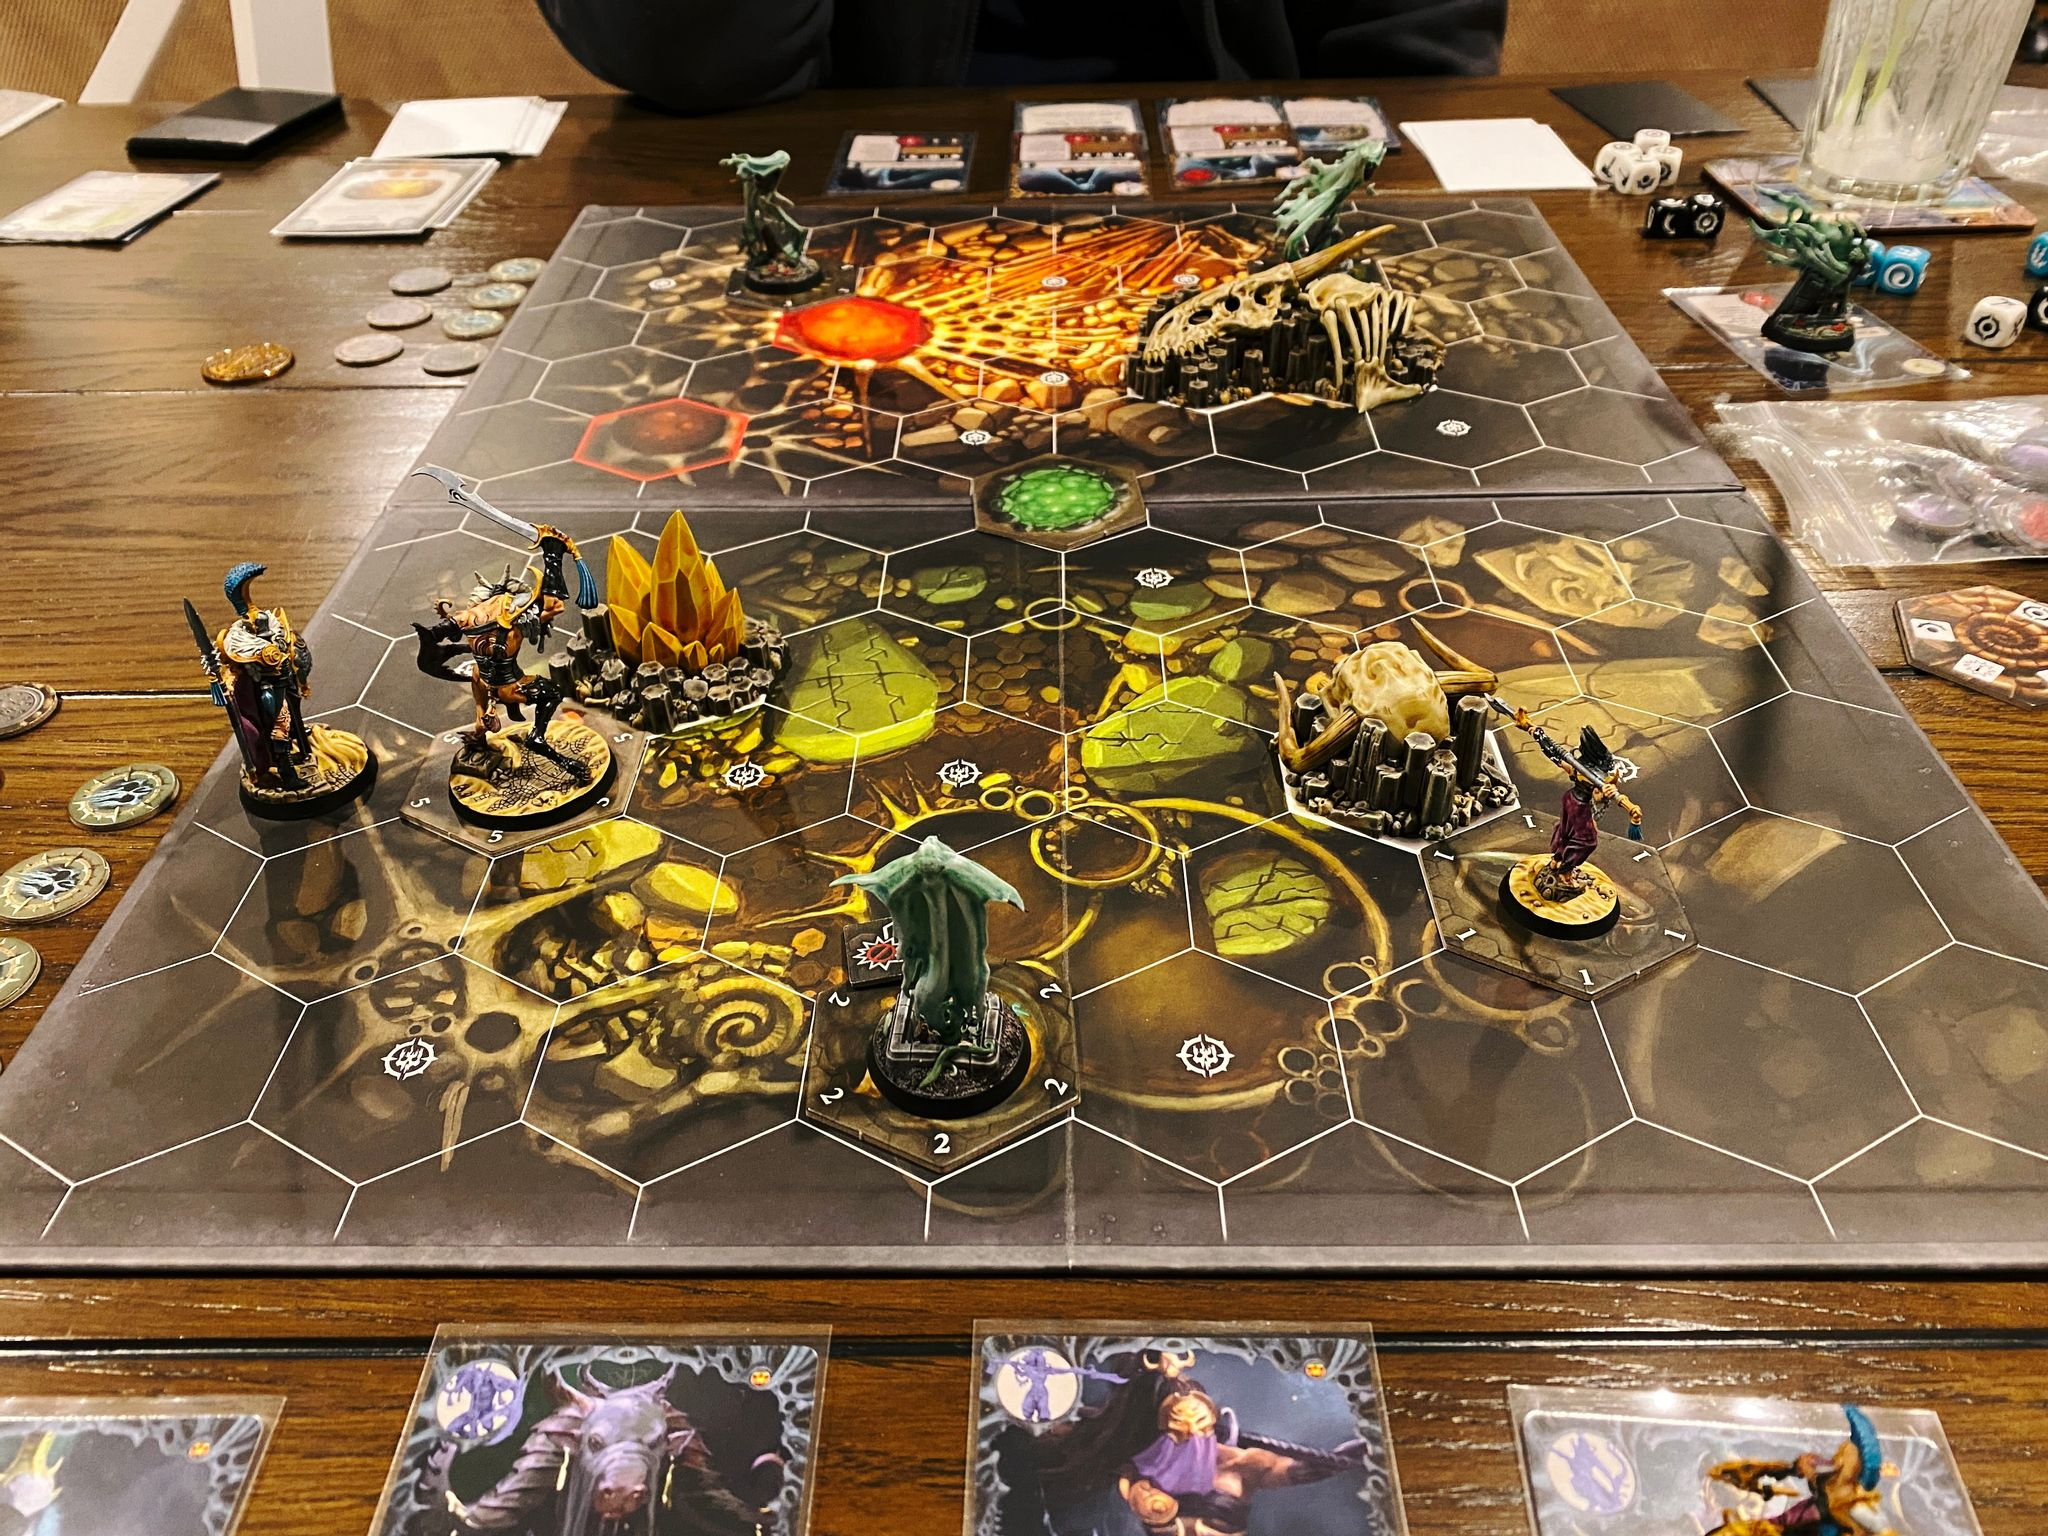 A photo of a Warhammer Underworlds game board with miniatures on it. There's also three of my new pieces of terrain: the big skeleton, the giant horned skull, and the crystals.